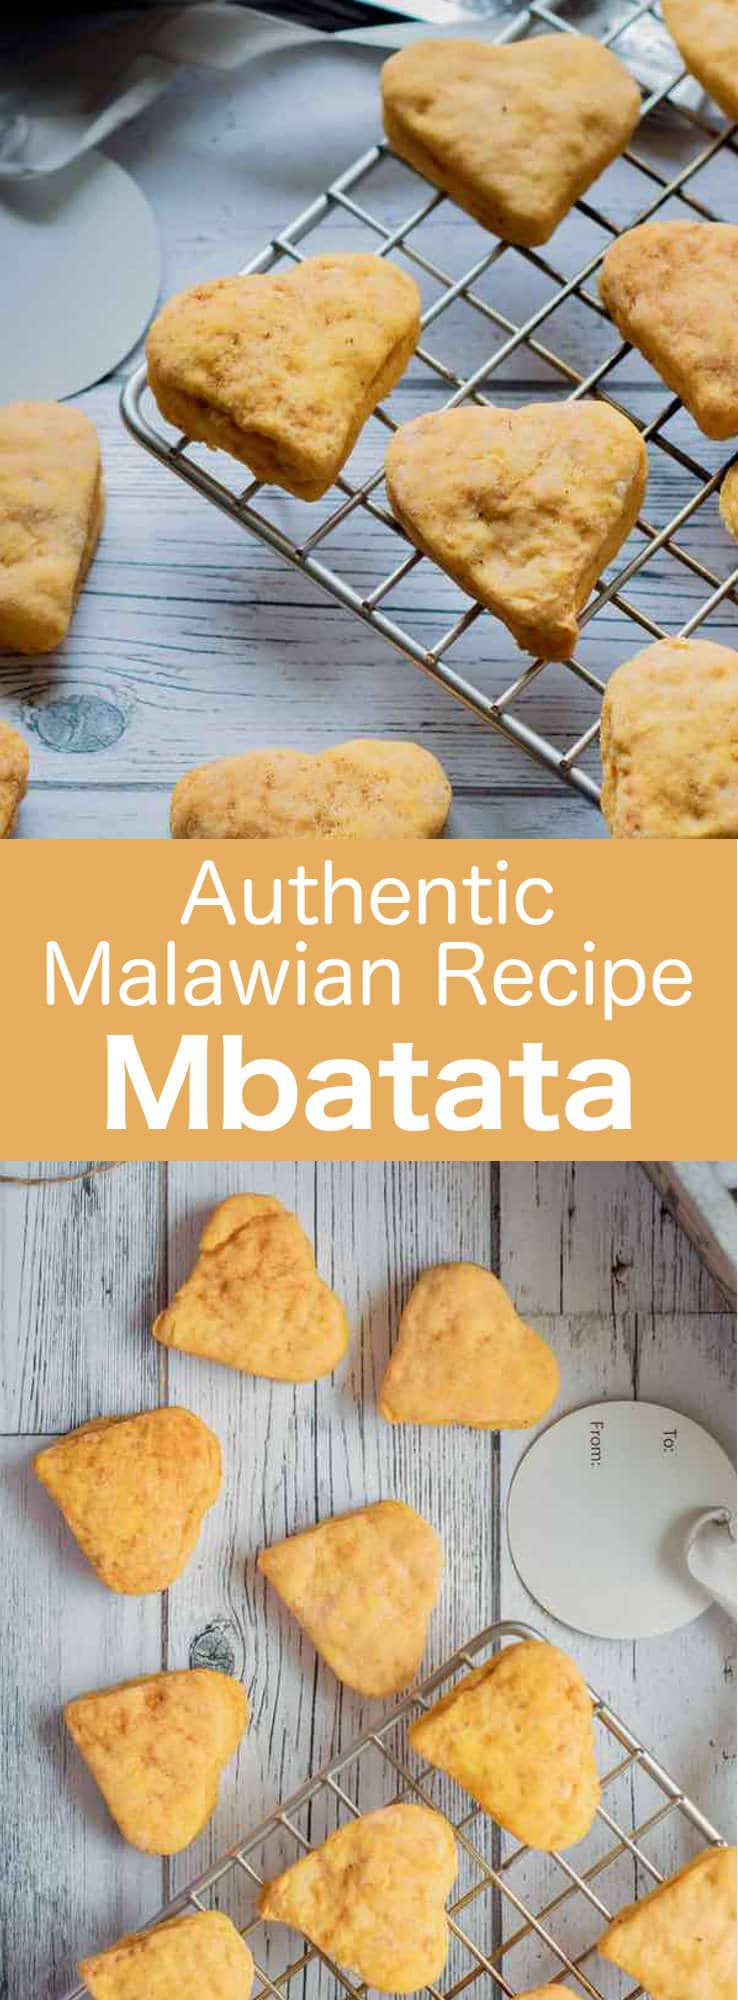 Mbatata have the same appearance as regular cookies. However, those delicious sweet potato treats from Malawi are slightly softer. #Malawi #cookies #Africa #AfricanRecipe #AfricanCuisine #196flavors